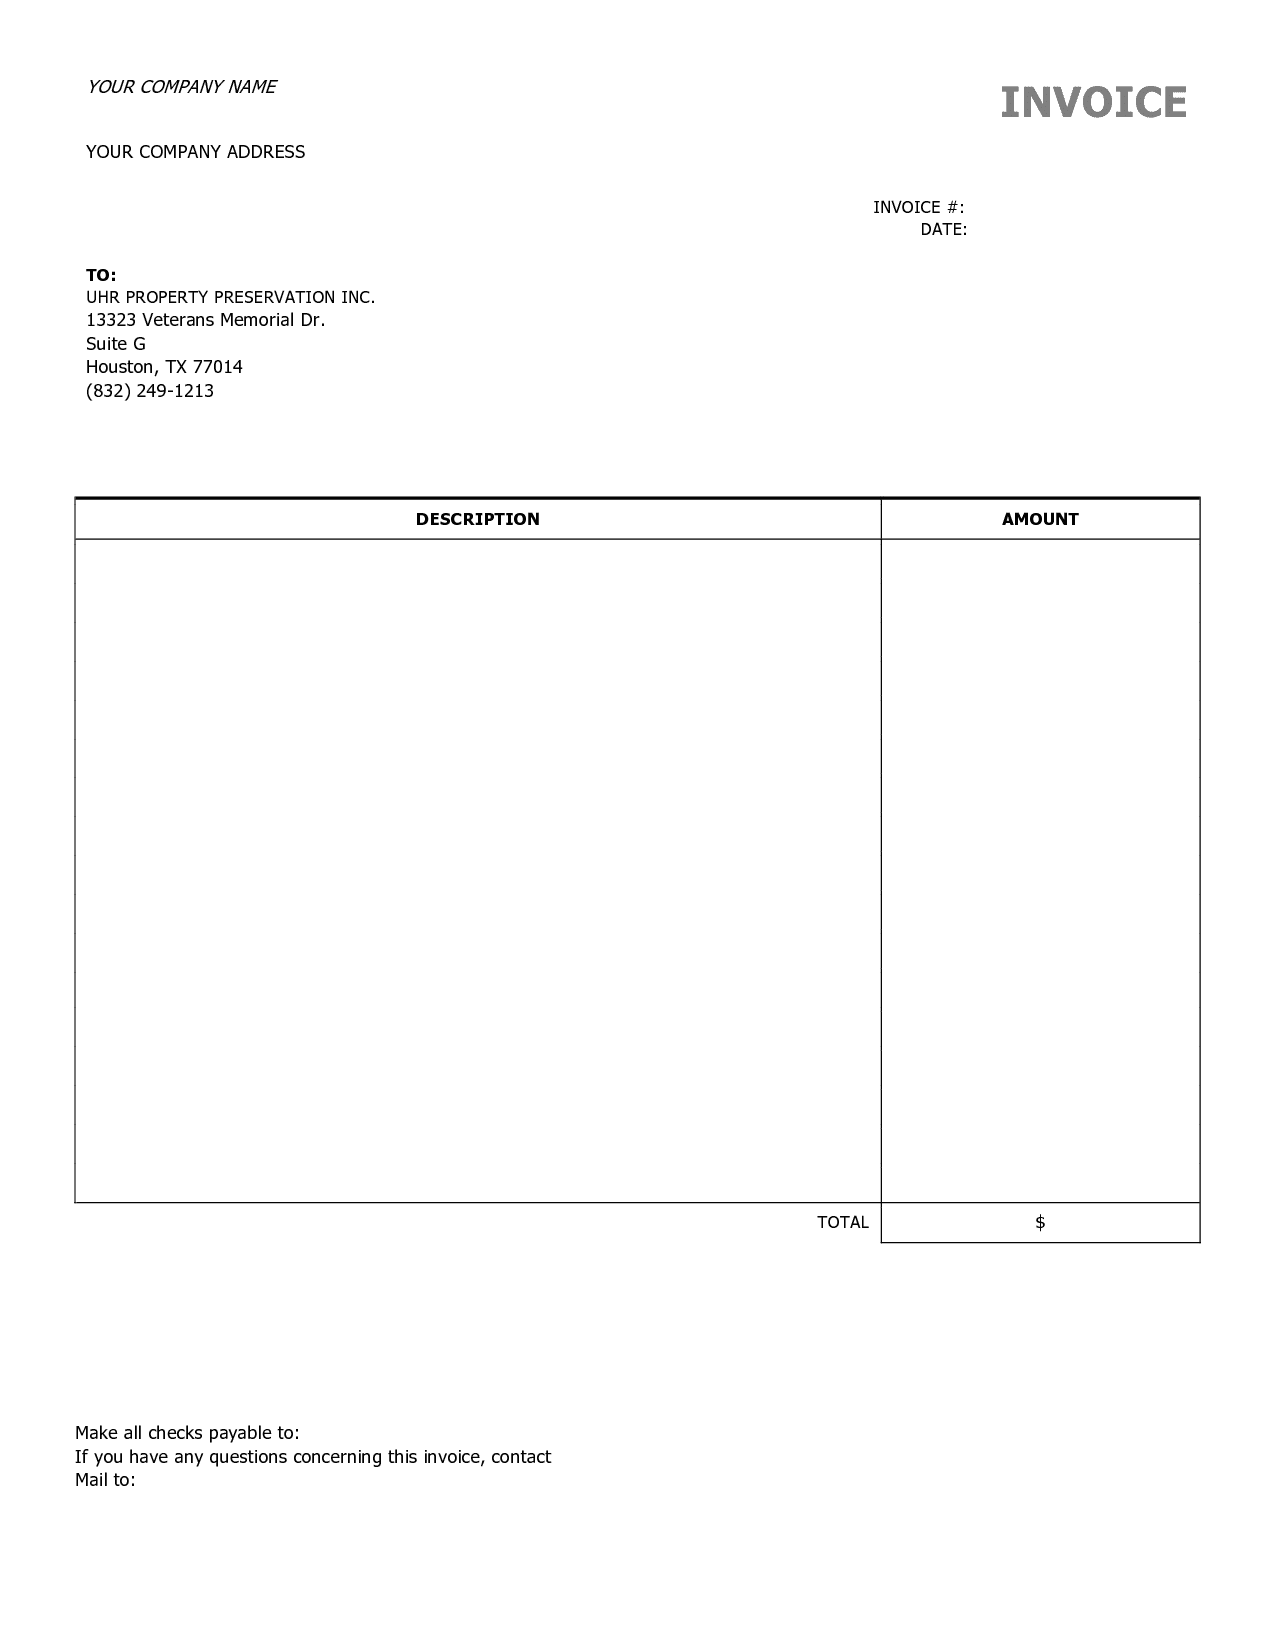 invoice template excel download free  u2014 excelxo com